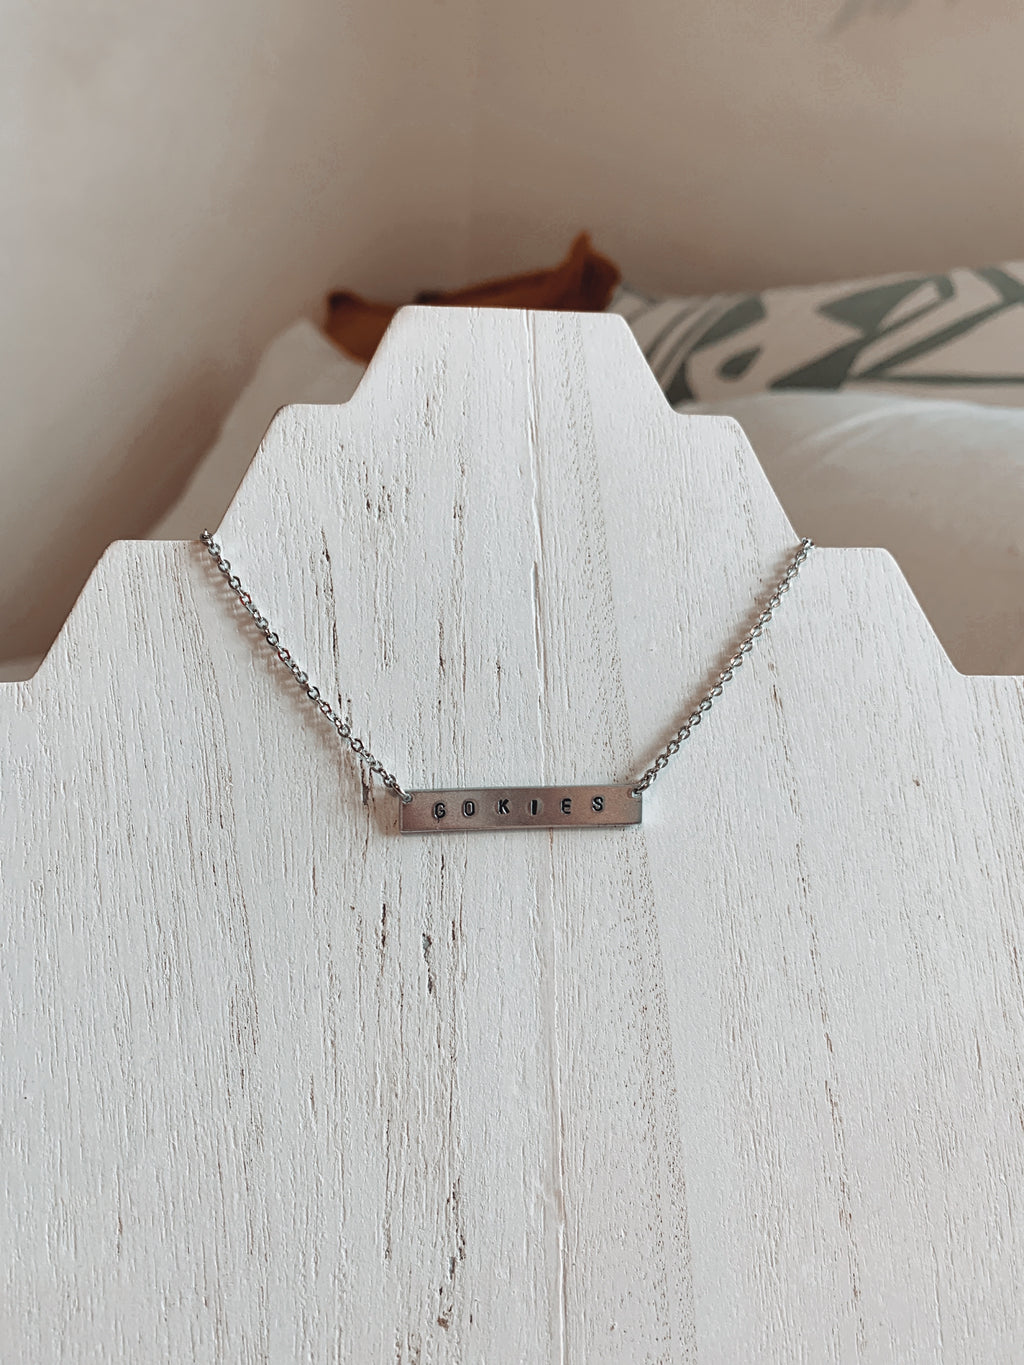 Stainless Steel Customized Bar Necklace - Talay Jewelry